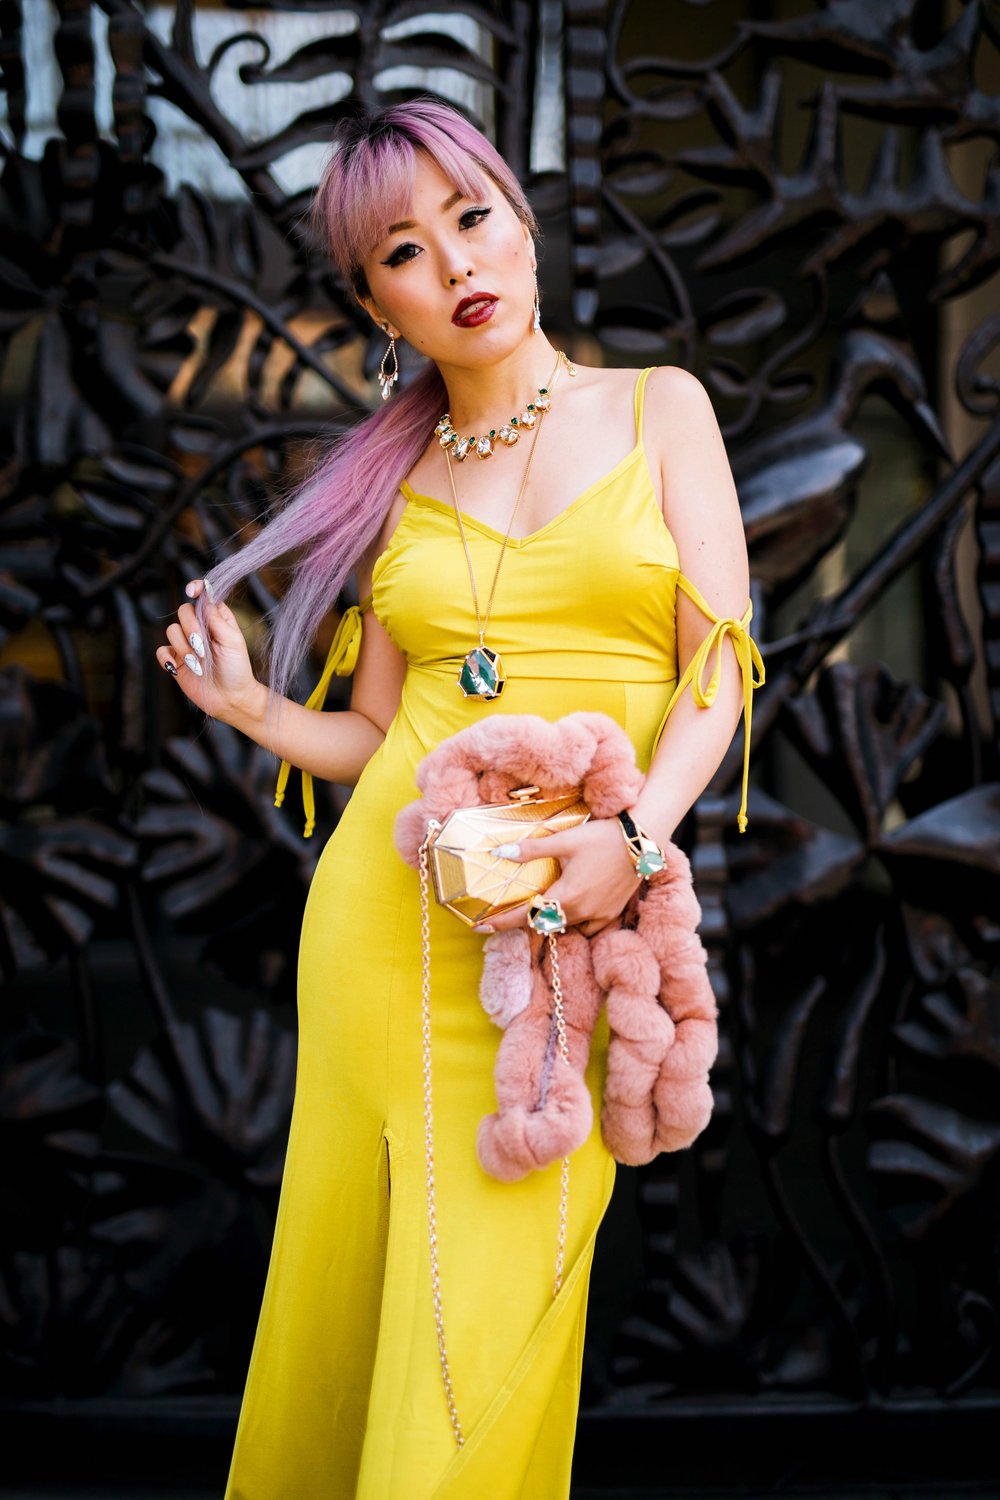 Nasty Gal yellow satin Long Term Maxi Dress-Zara Silver heeled sandals-Swarovski Rose Gold-Tone Crystal Chandelier Earrings-Huge Ring, Multi-colored, Gold plating-Swarovski Rose Goldplated Crystaldust Cross Ring-Swarovski Pave Crystal Pendant Necklace-Gold Clutch-Pink faux fur scarf-pink hair-settle fashion style blogger-petite-japanese-aika's love closet 18